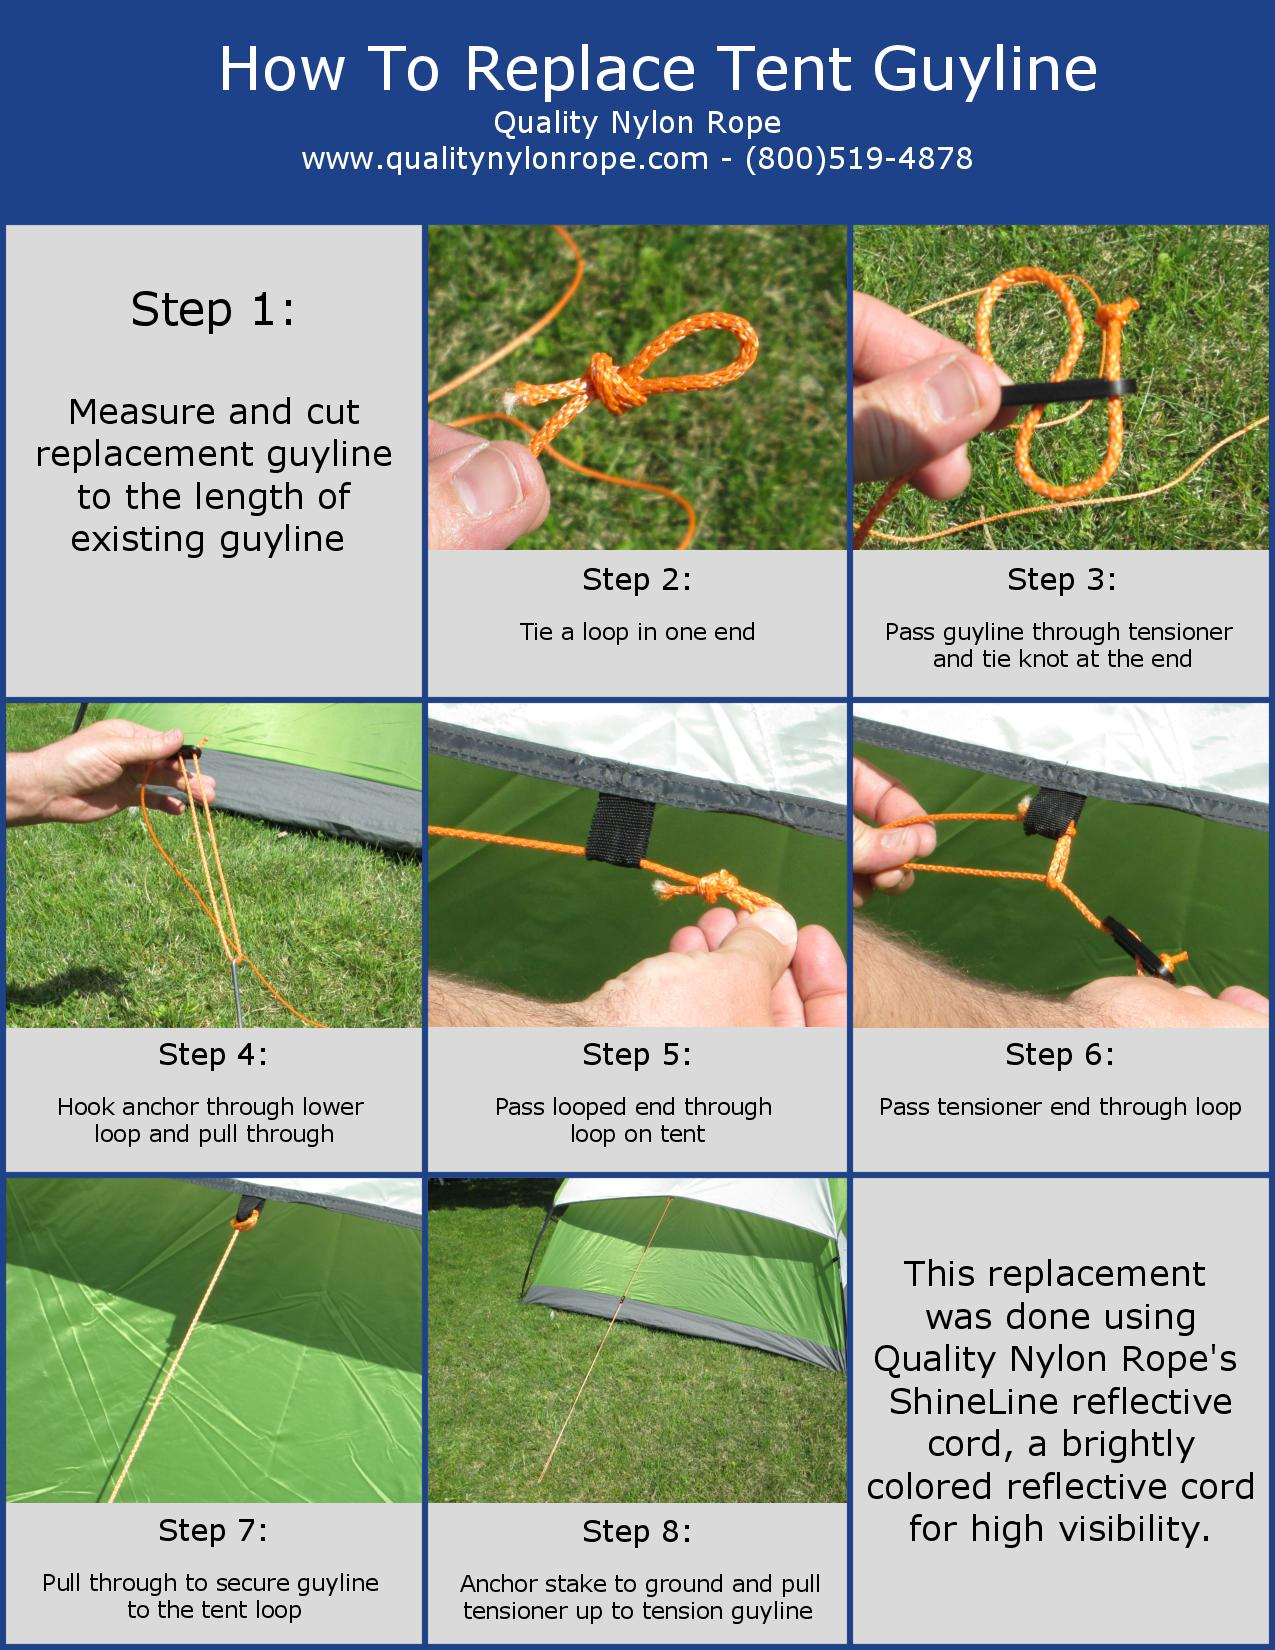 How to Replace a Tent Guyline (Infographic) - QNR